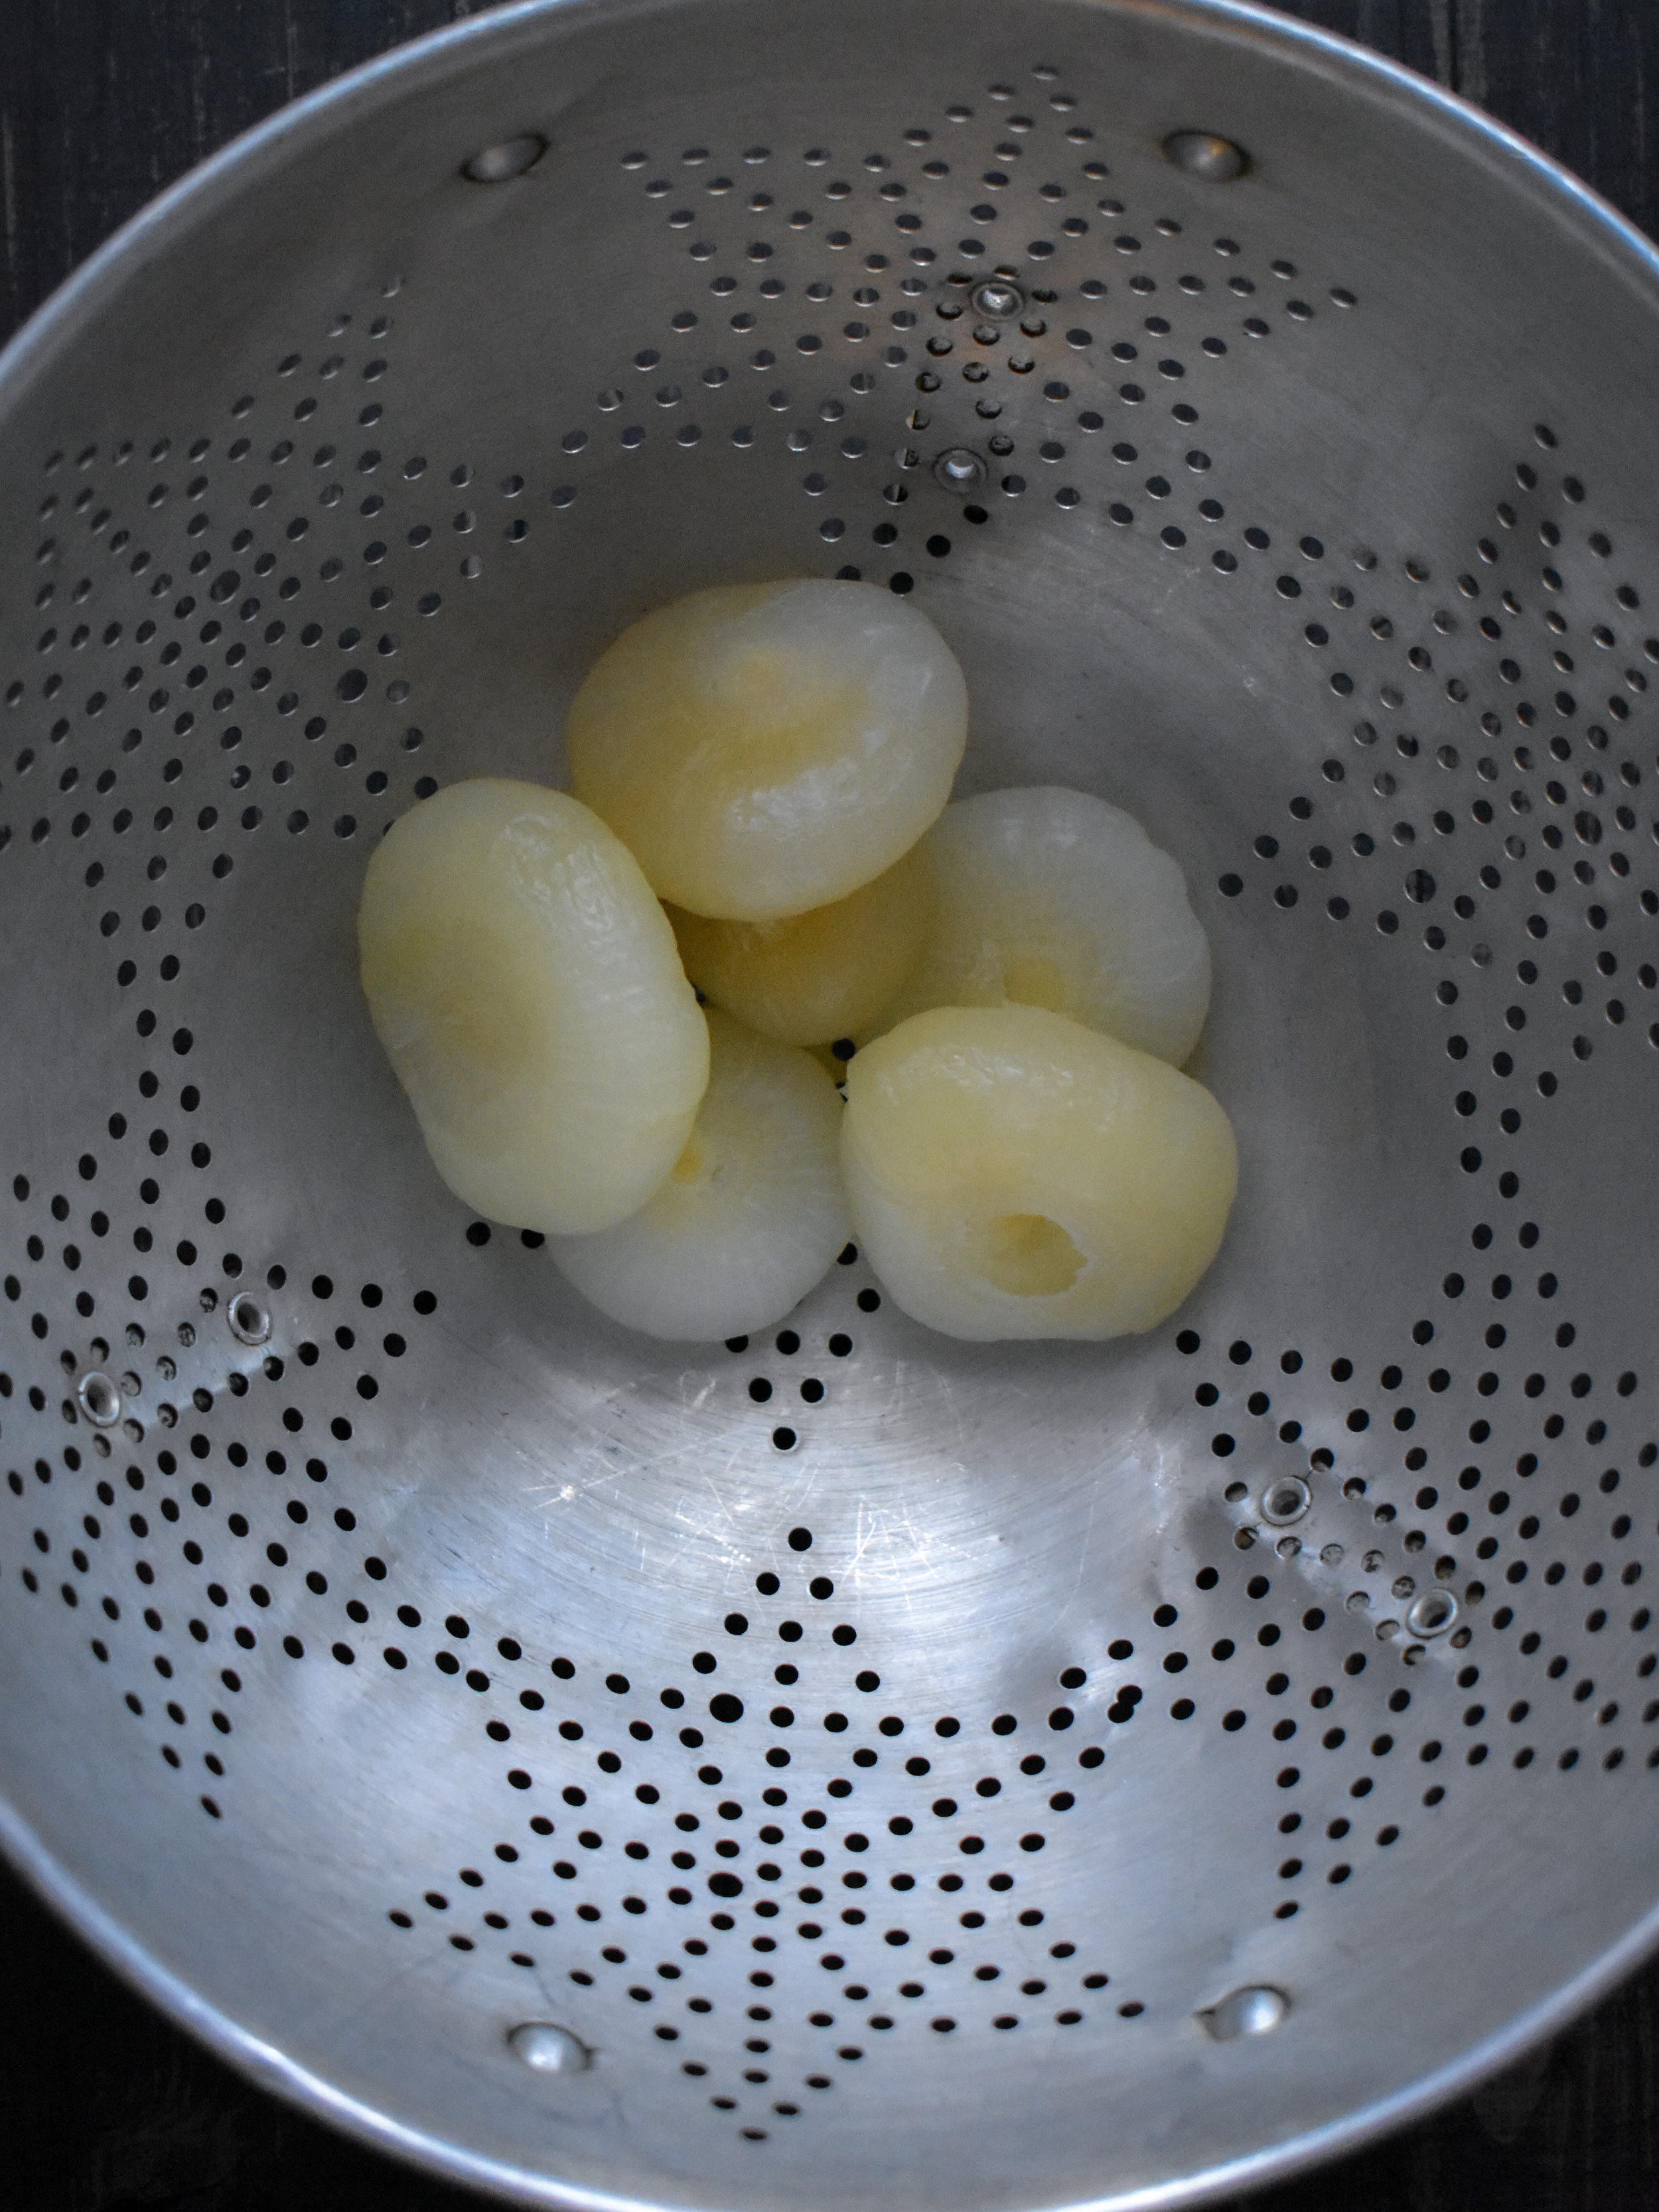 2. Bring a medium pot to a boil and add cipollini onions. Boil for 8-10 minutes until softened.